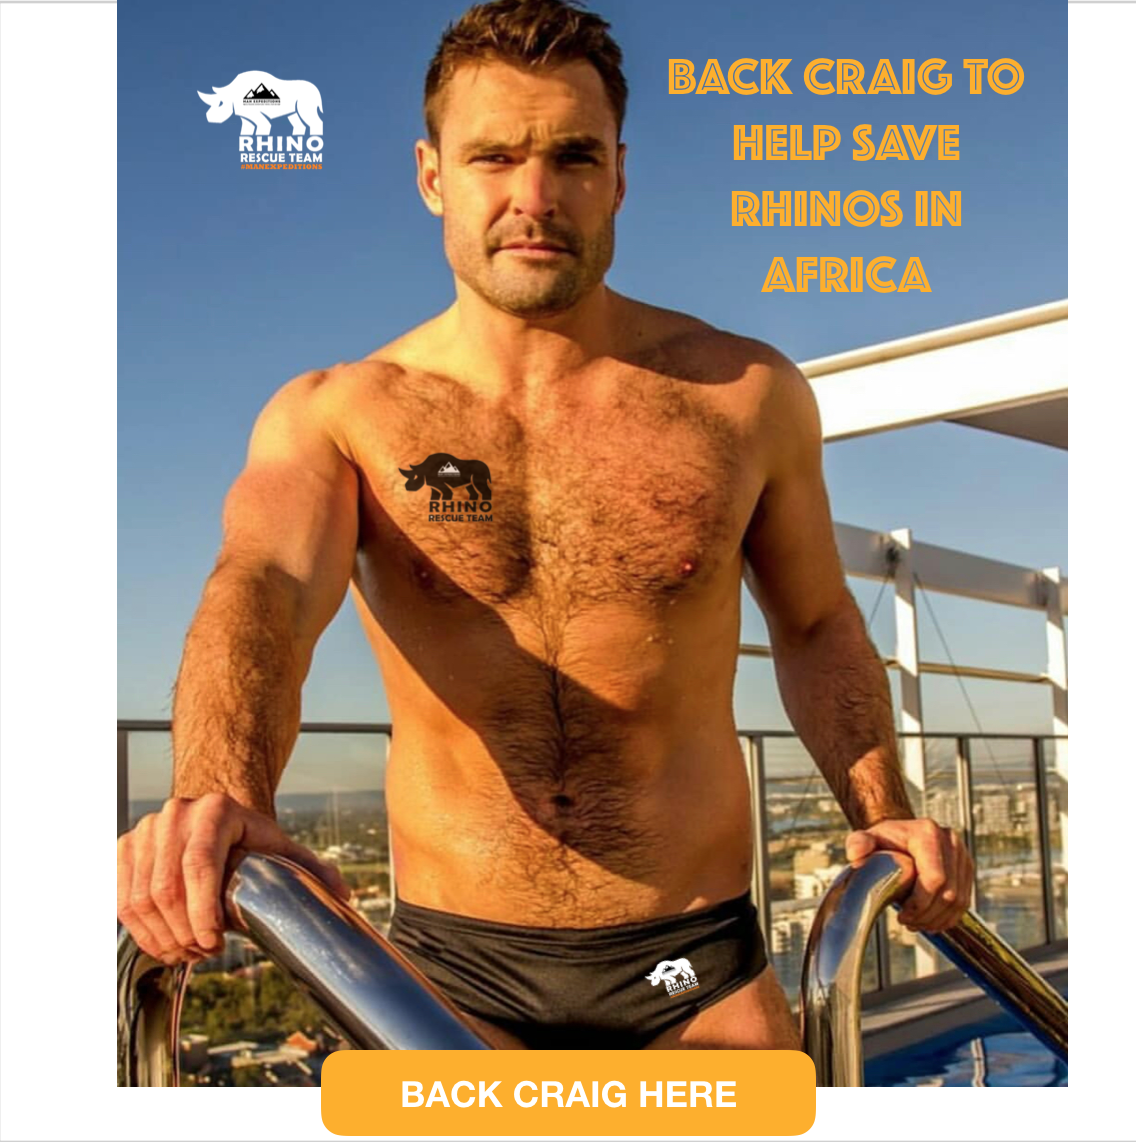 Meet Craig, our   #ManExRhinoRescue   Ambassidor and volunteer. Support Craig with a donation to help fund his costs to come to Africa to help save, protect and rehabilitate baby rhinos injured by poachers. The highest donor at the time Craig's funding goal is reached will have the option to join Craig all expenses paid (flights not included) to join him on the   #ManExRhinoRescue   expedition (See details below).    For every dollar you donate, 70 cents is passed directly through to the rhino rescue efforts of the   #ManExRhinoRescue     Project. The remaining 30 cents is used to pay for things like advertising, payment processing and the costs of making the fundraising campaign a success—including providing the prize.    Man Expeditions will issue anyone who donates over $250 to Craig's campaign with a $500 travel  credit voucher  to use on any Man Expeditions trip (valid for 2 years expiring on August 1, 2021).